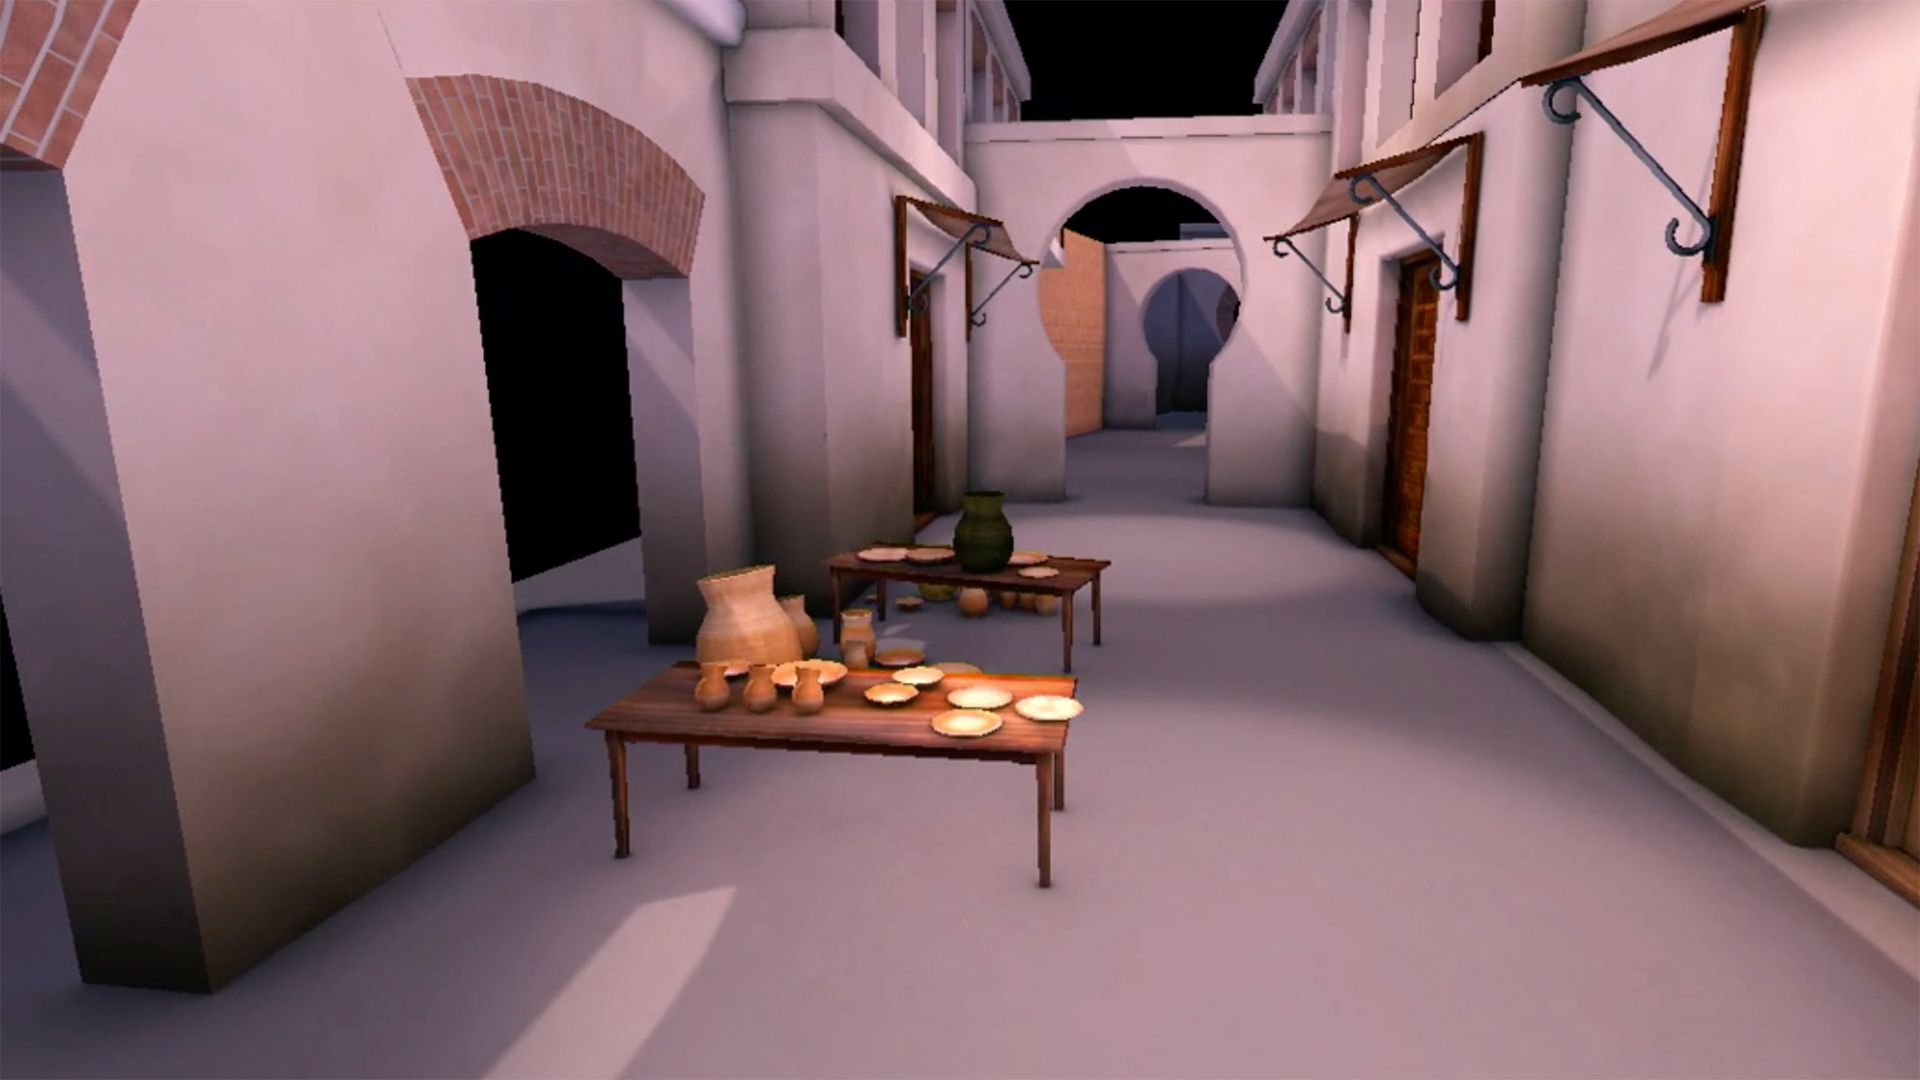 Readying objects for light baking Lighting and Material